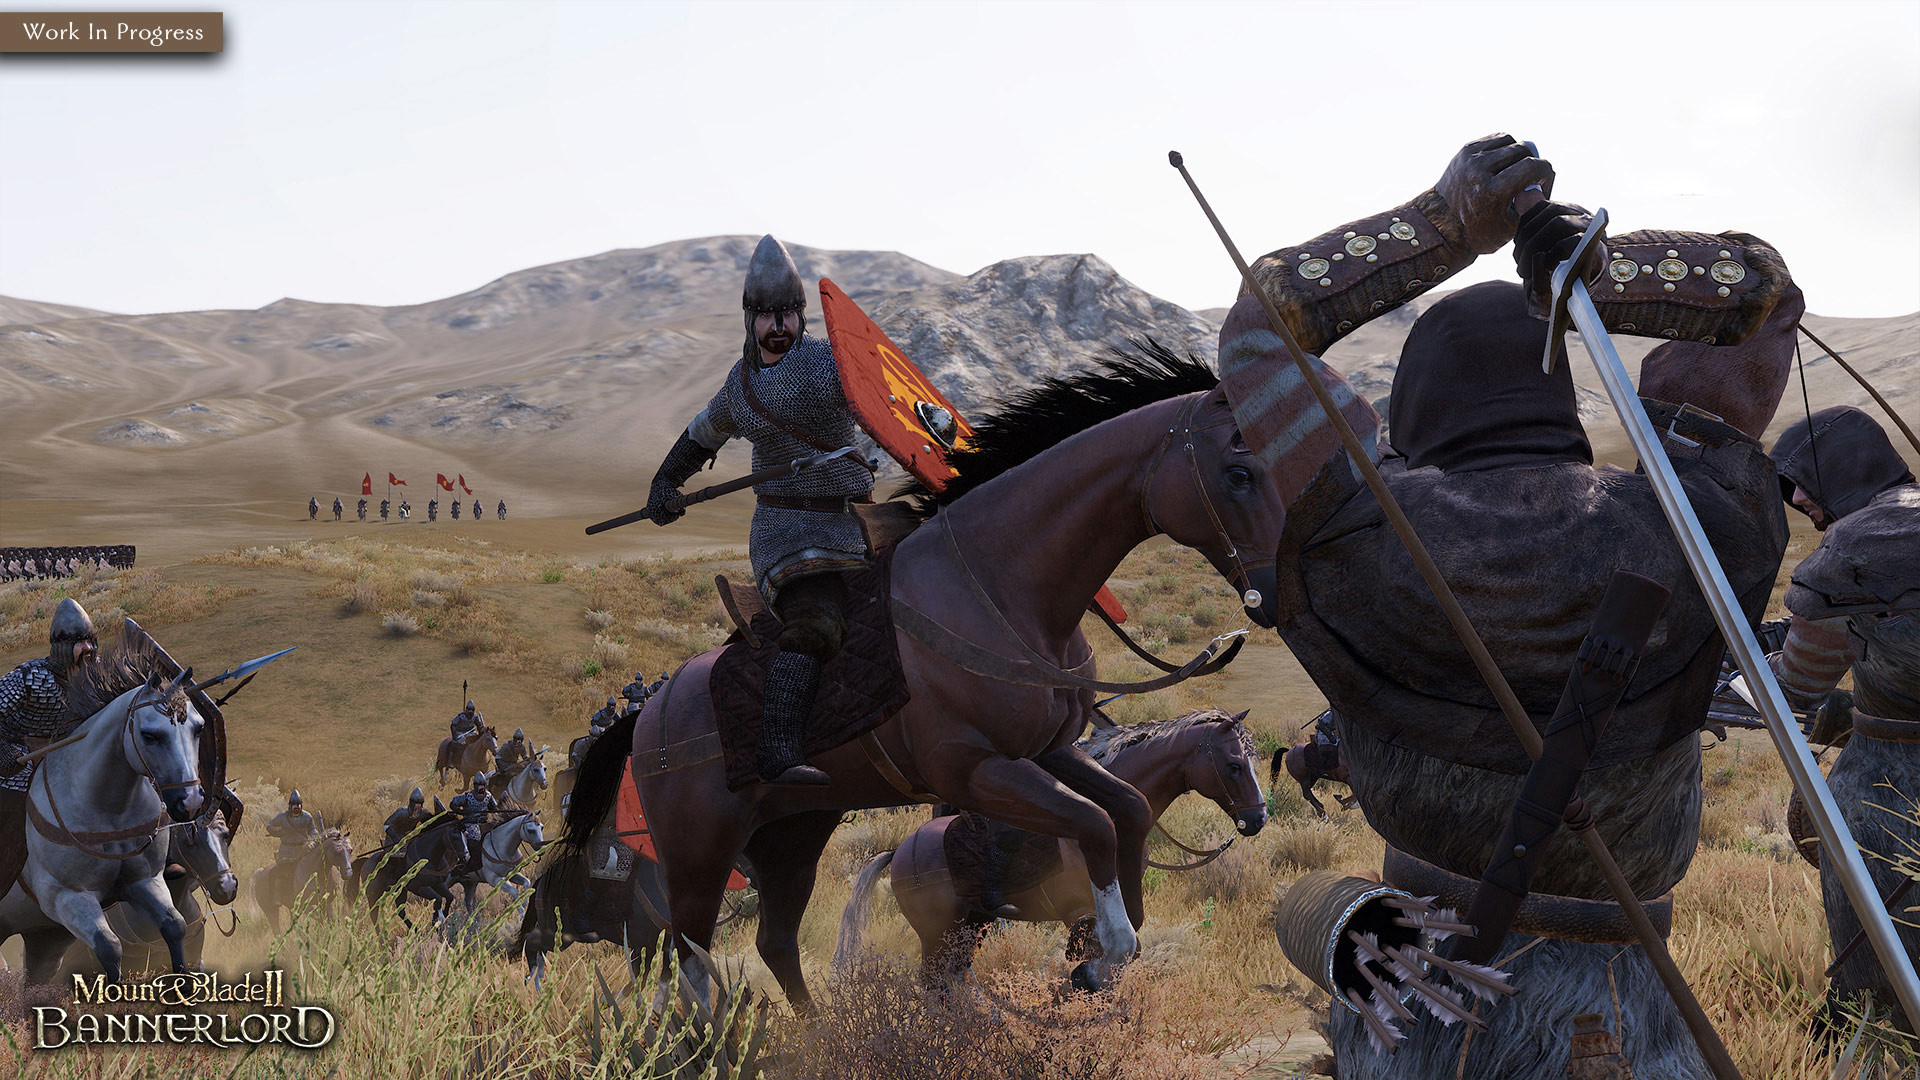 Does Mount and Blade II: Bannerlord have auto block?